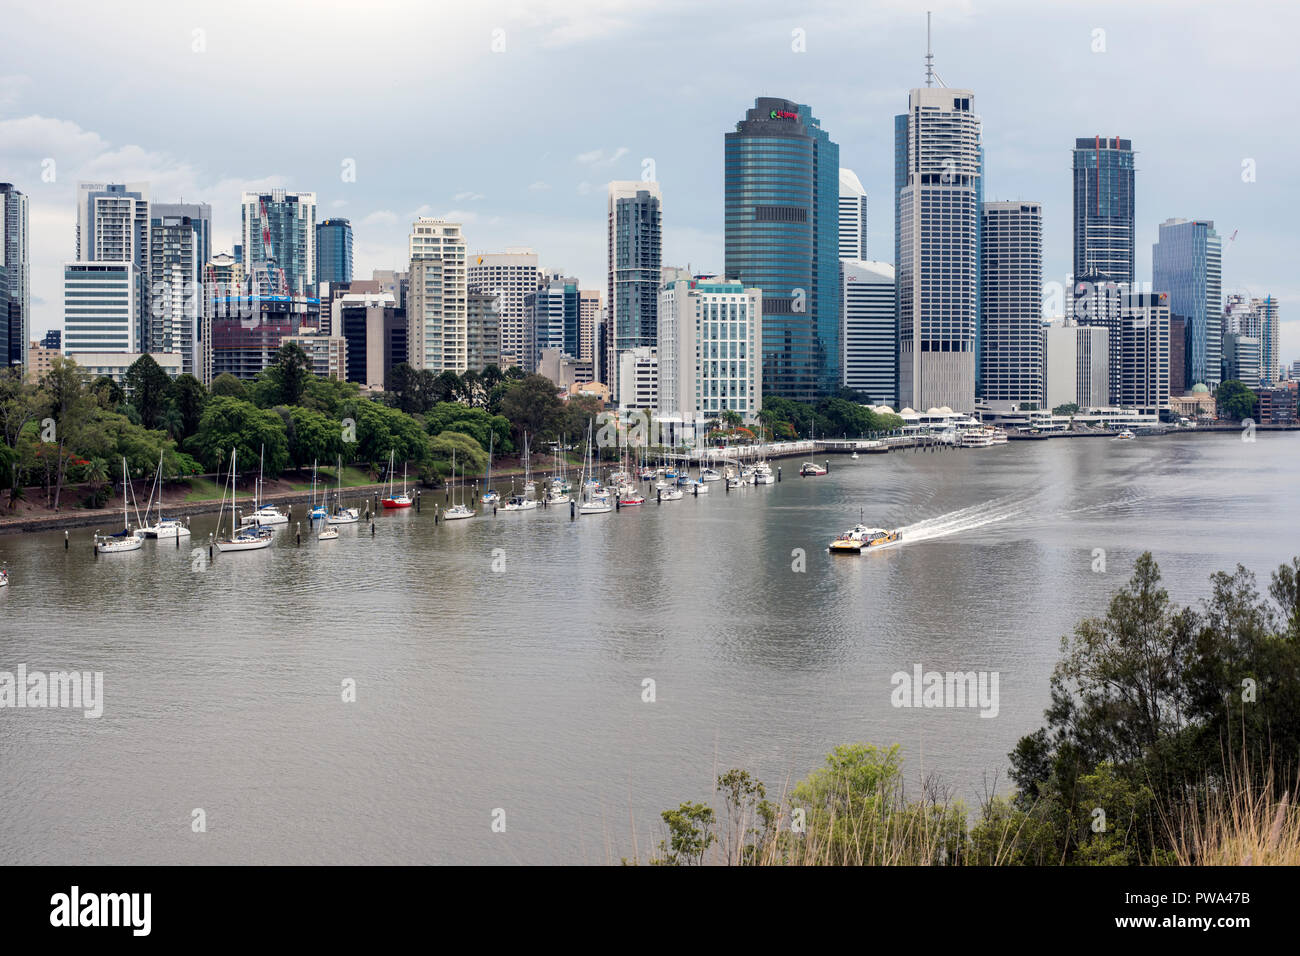 View of Brisbane, Queensland, Australia and Brisbane River  from a high balcony - Stock Image